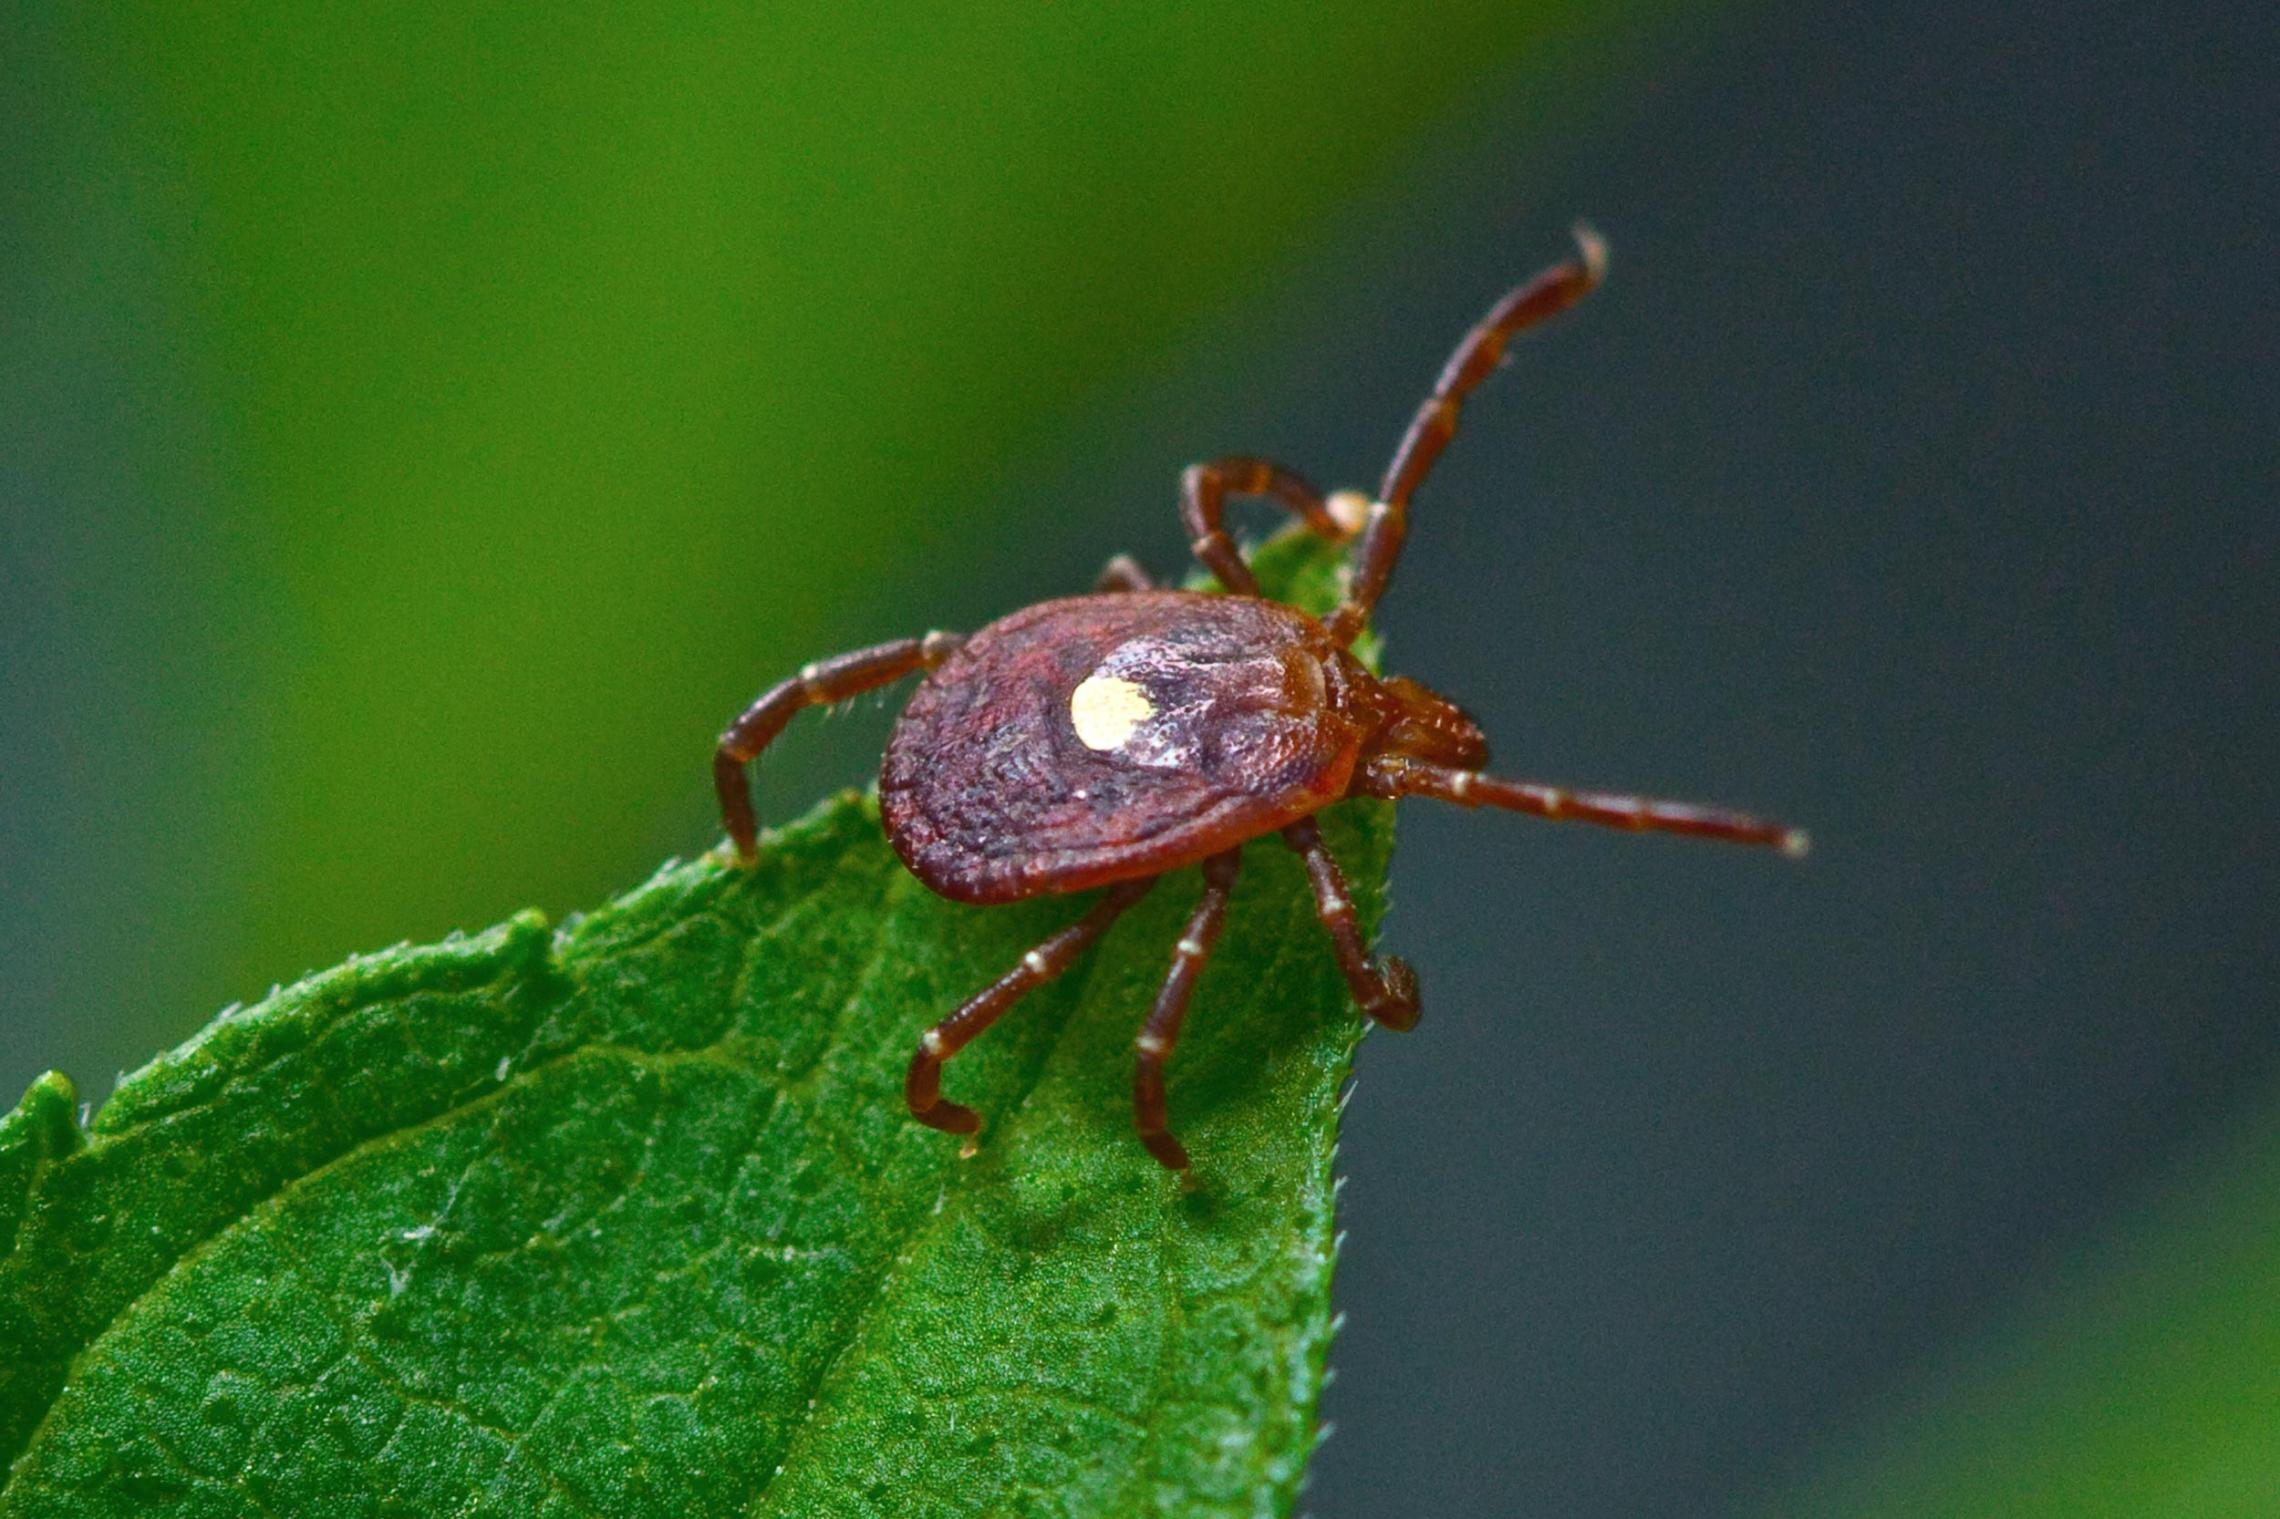 The bite of the lone star tick can cause a sudden and severe allergy to mammalian meat. UVA scientists are beginning to understand why.